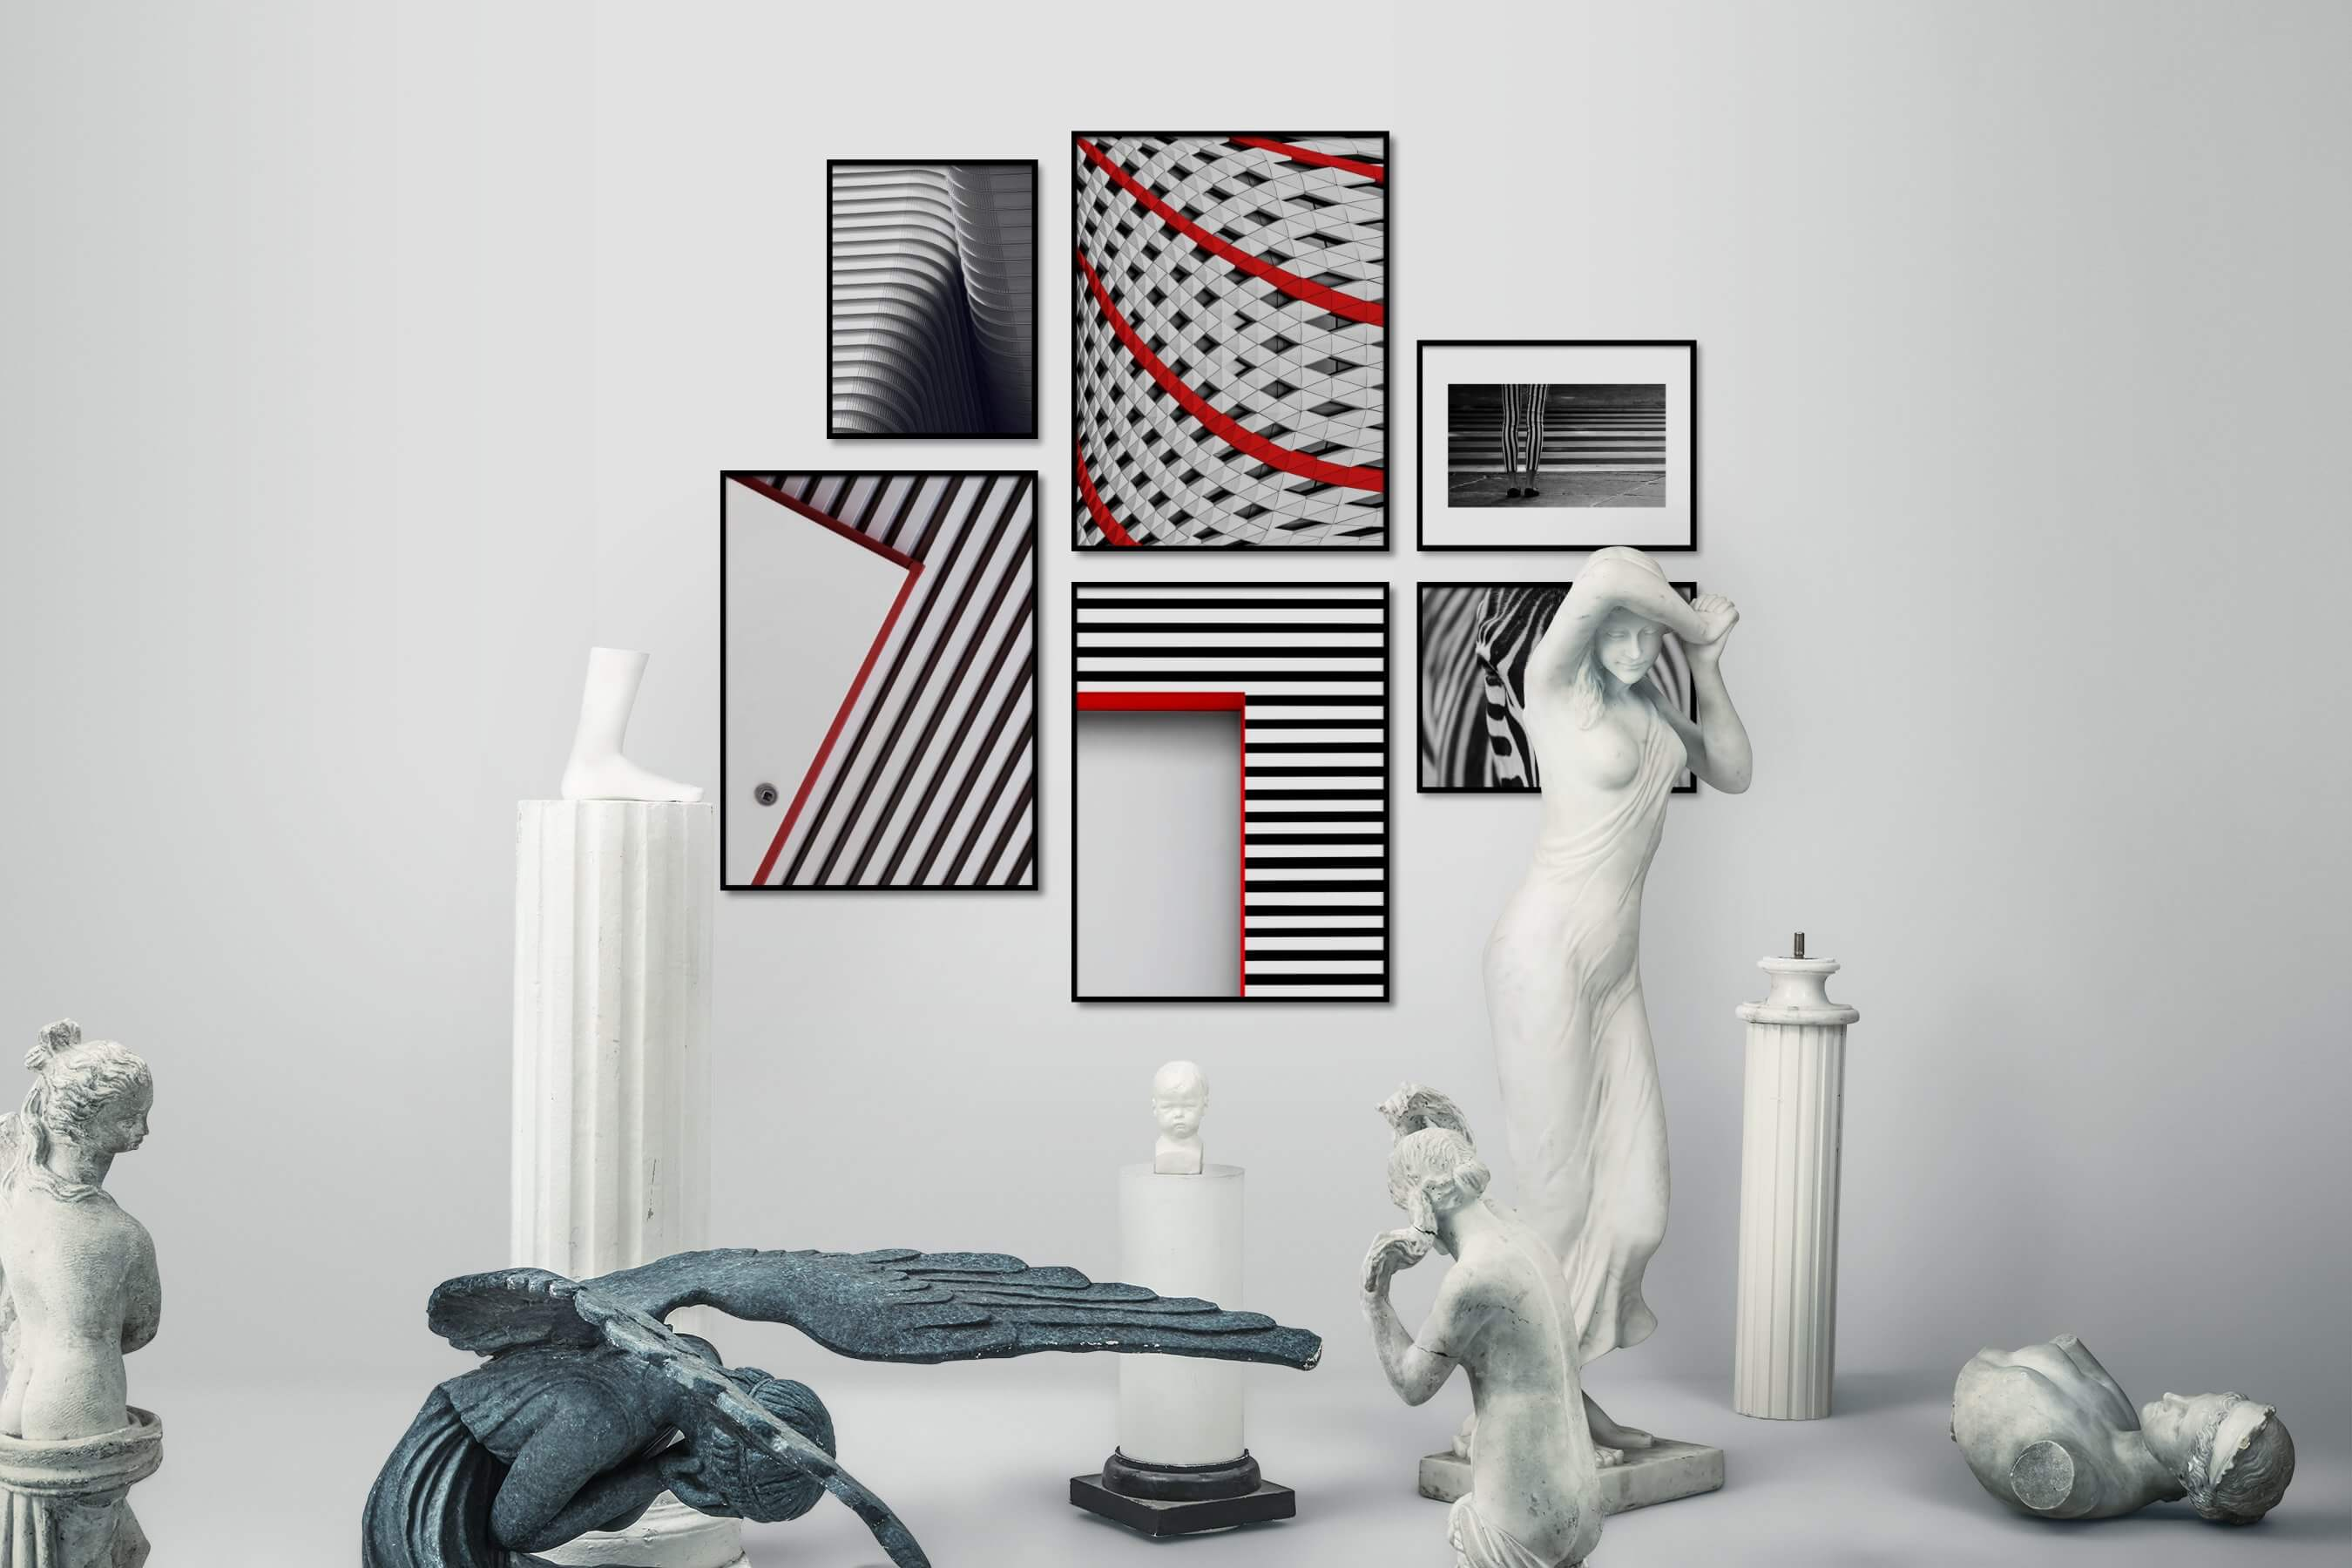 Gallery wall idea with six framed pictures arranged on a wall depicting Black & White, For the Moderate, For the Maximalist, Fashion & Beauty, City Life, and Animals